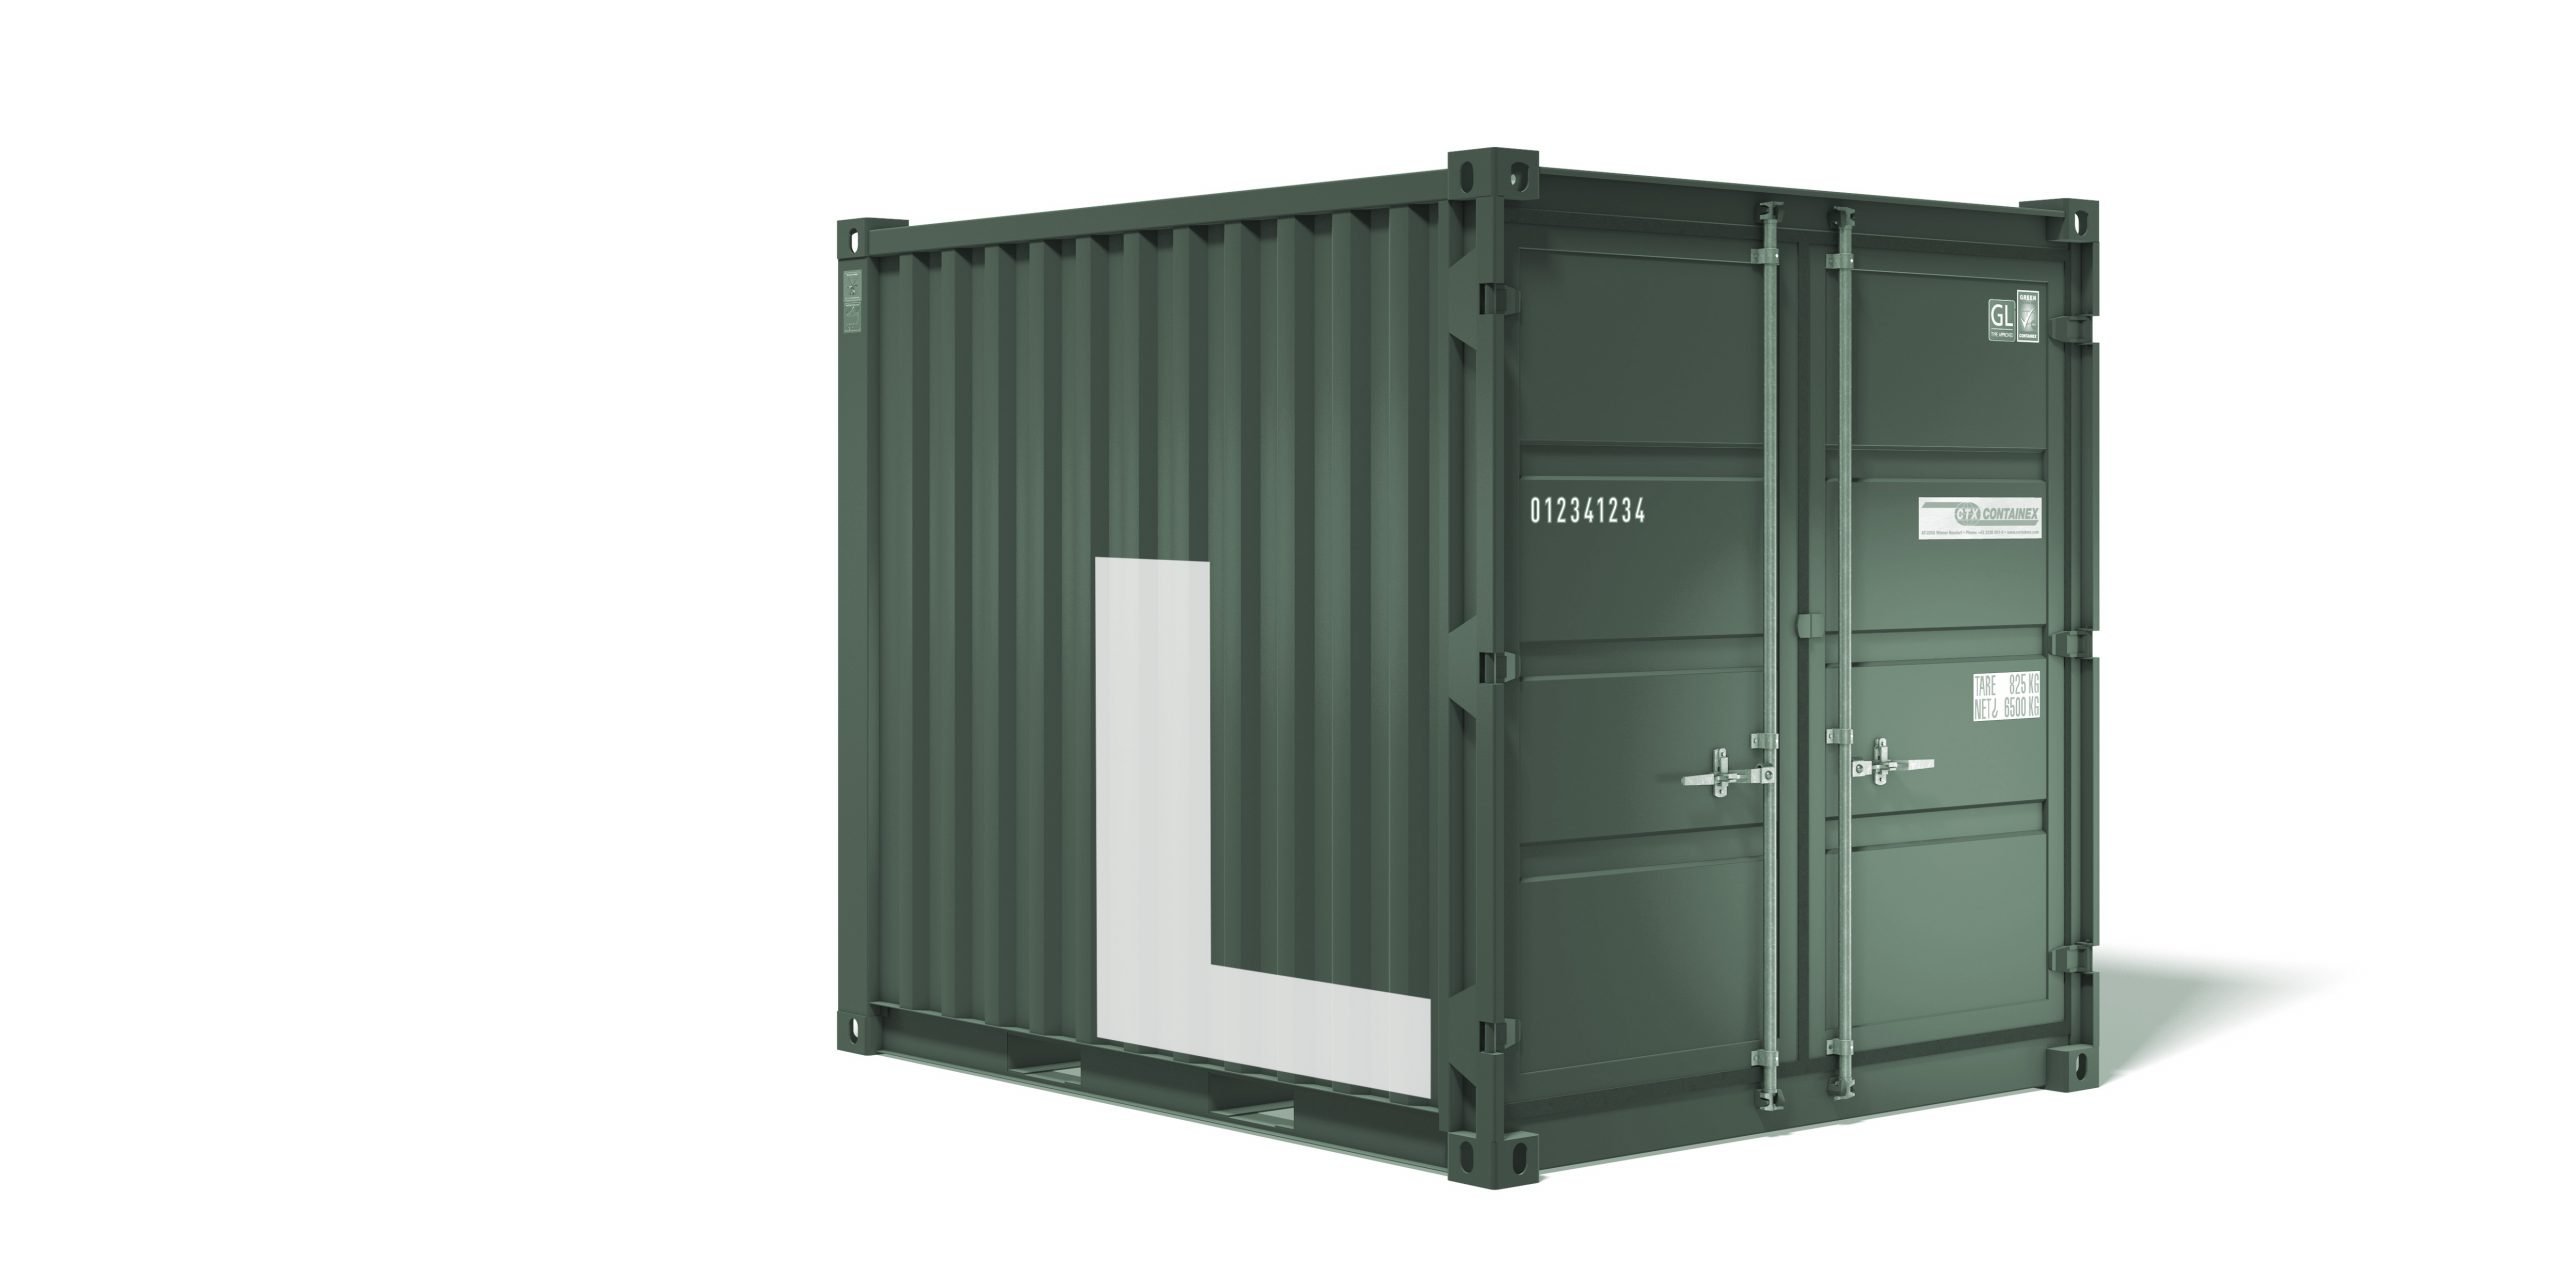 Lagercontainer L in Lebring bei Graz mieten